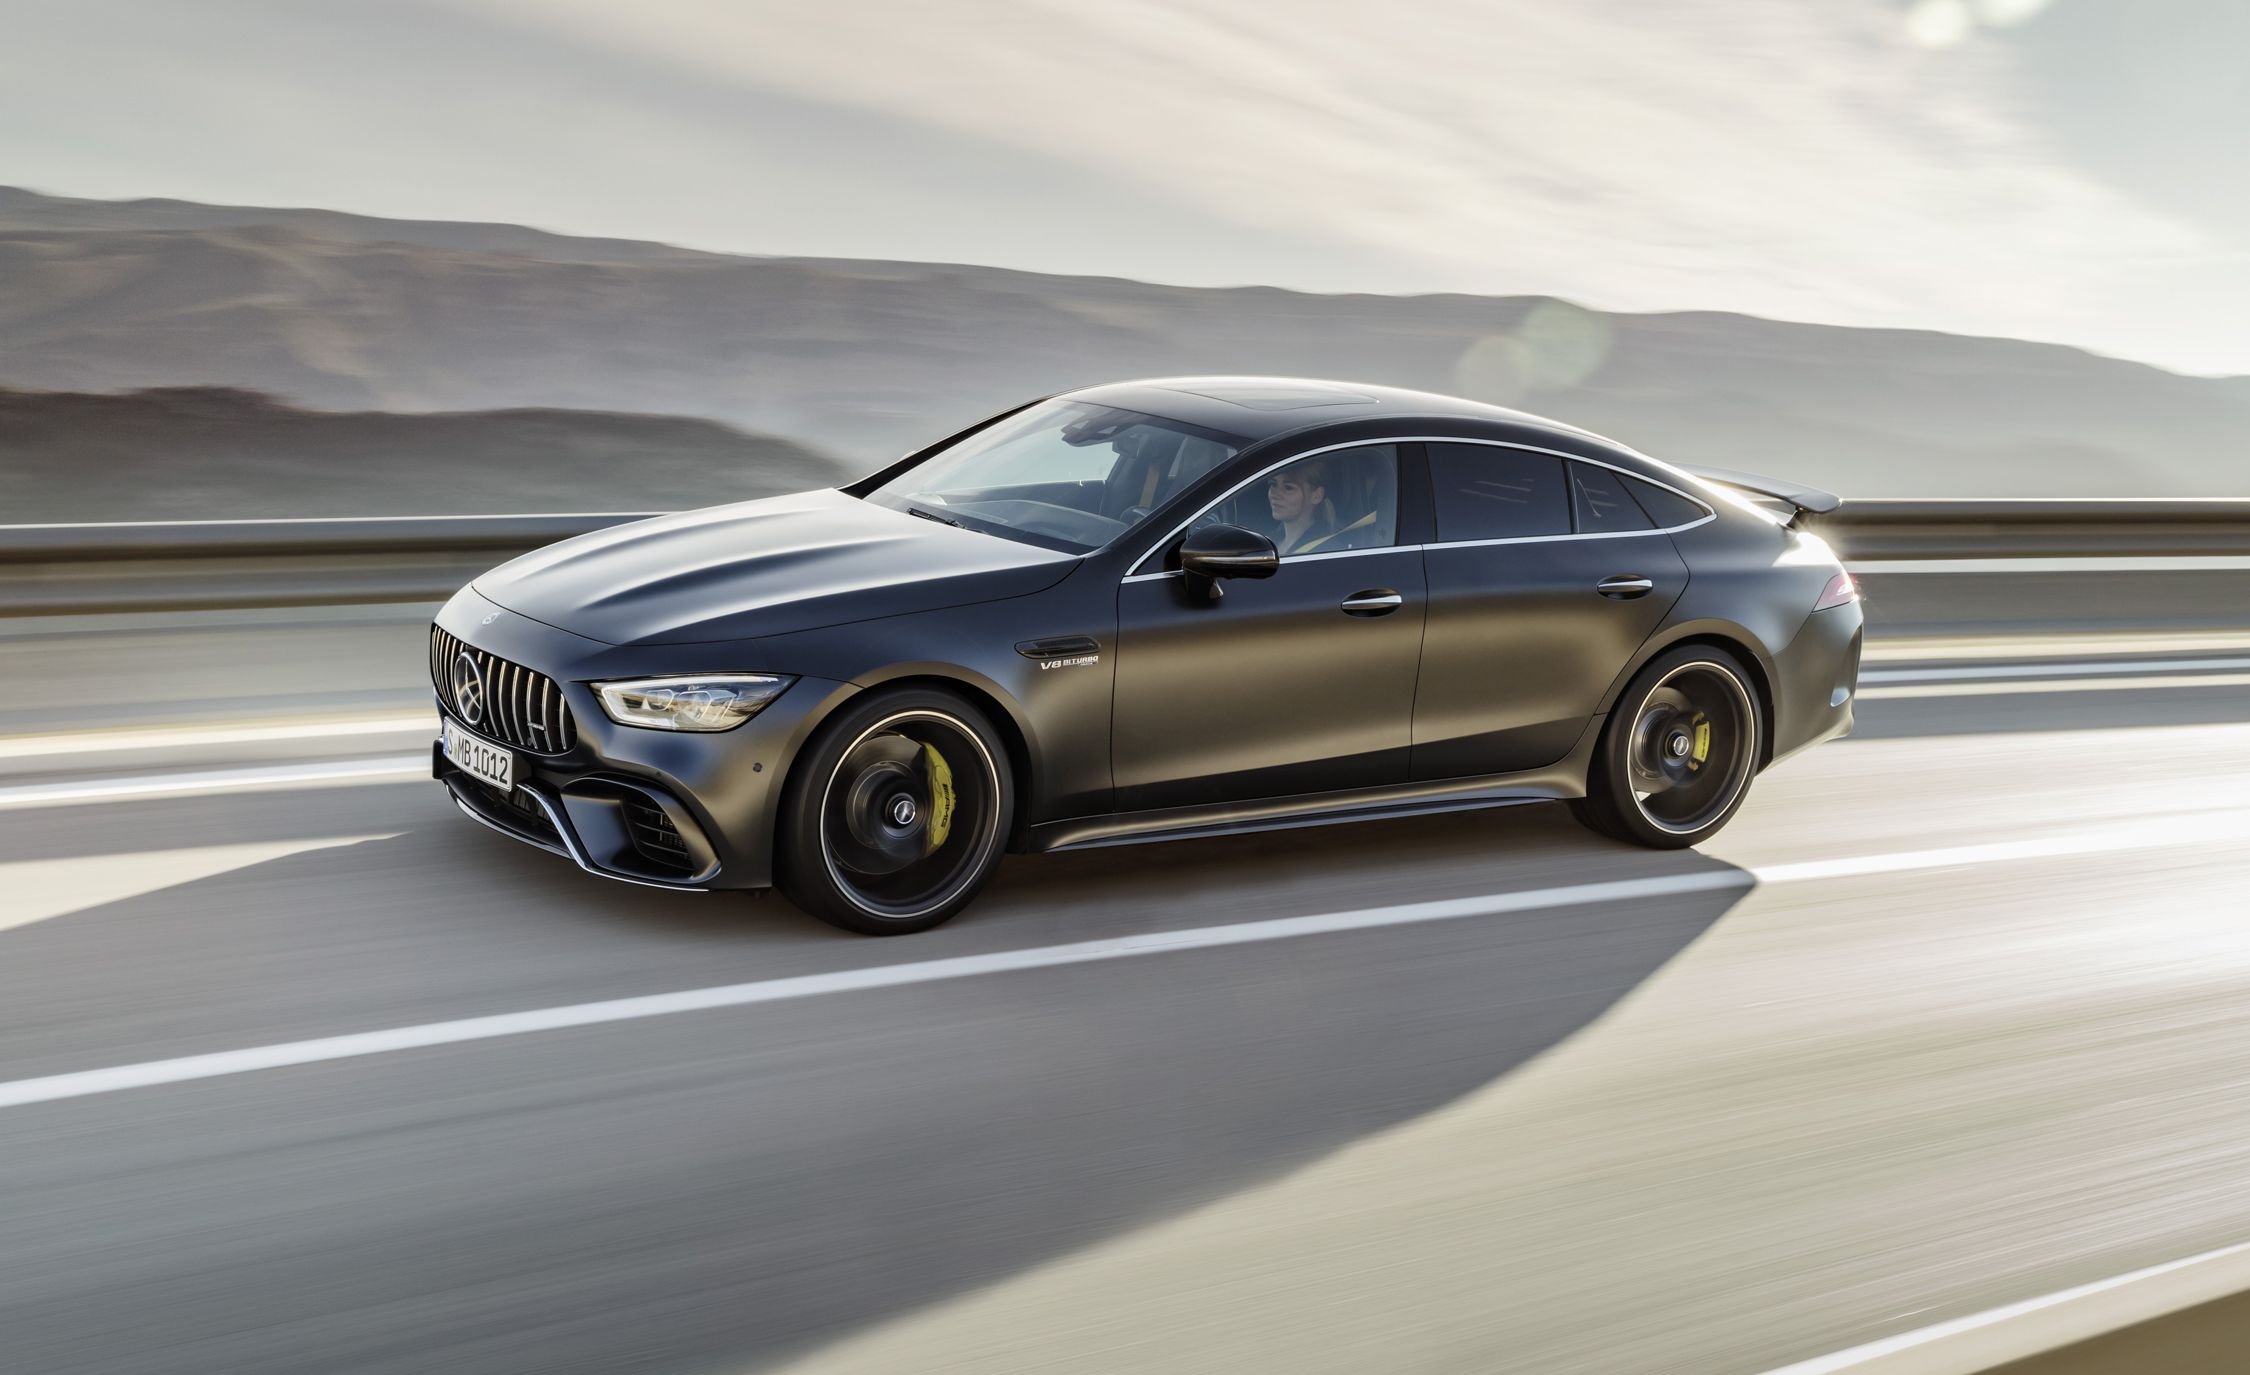 Superior 2019 Mercedes AMG GT 4 Door: The More Door AMG